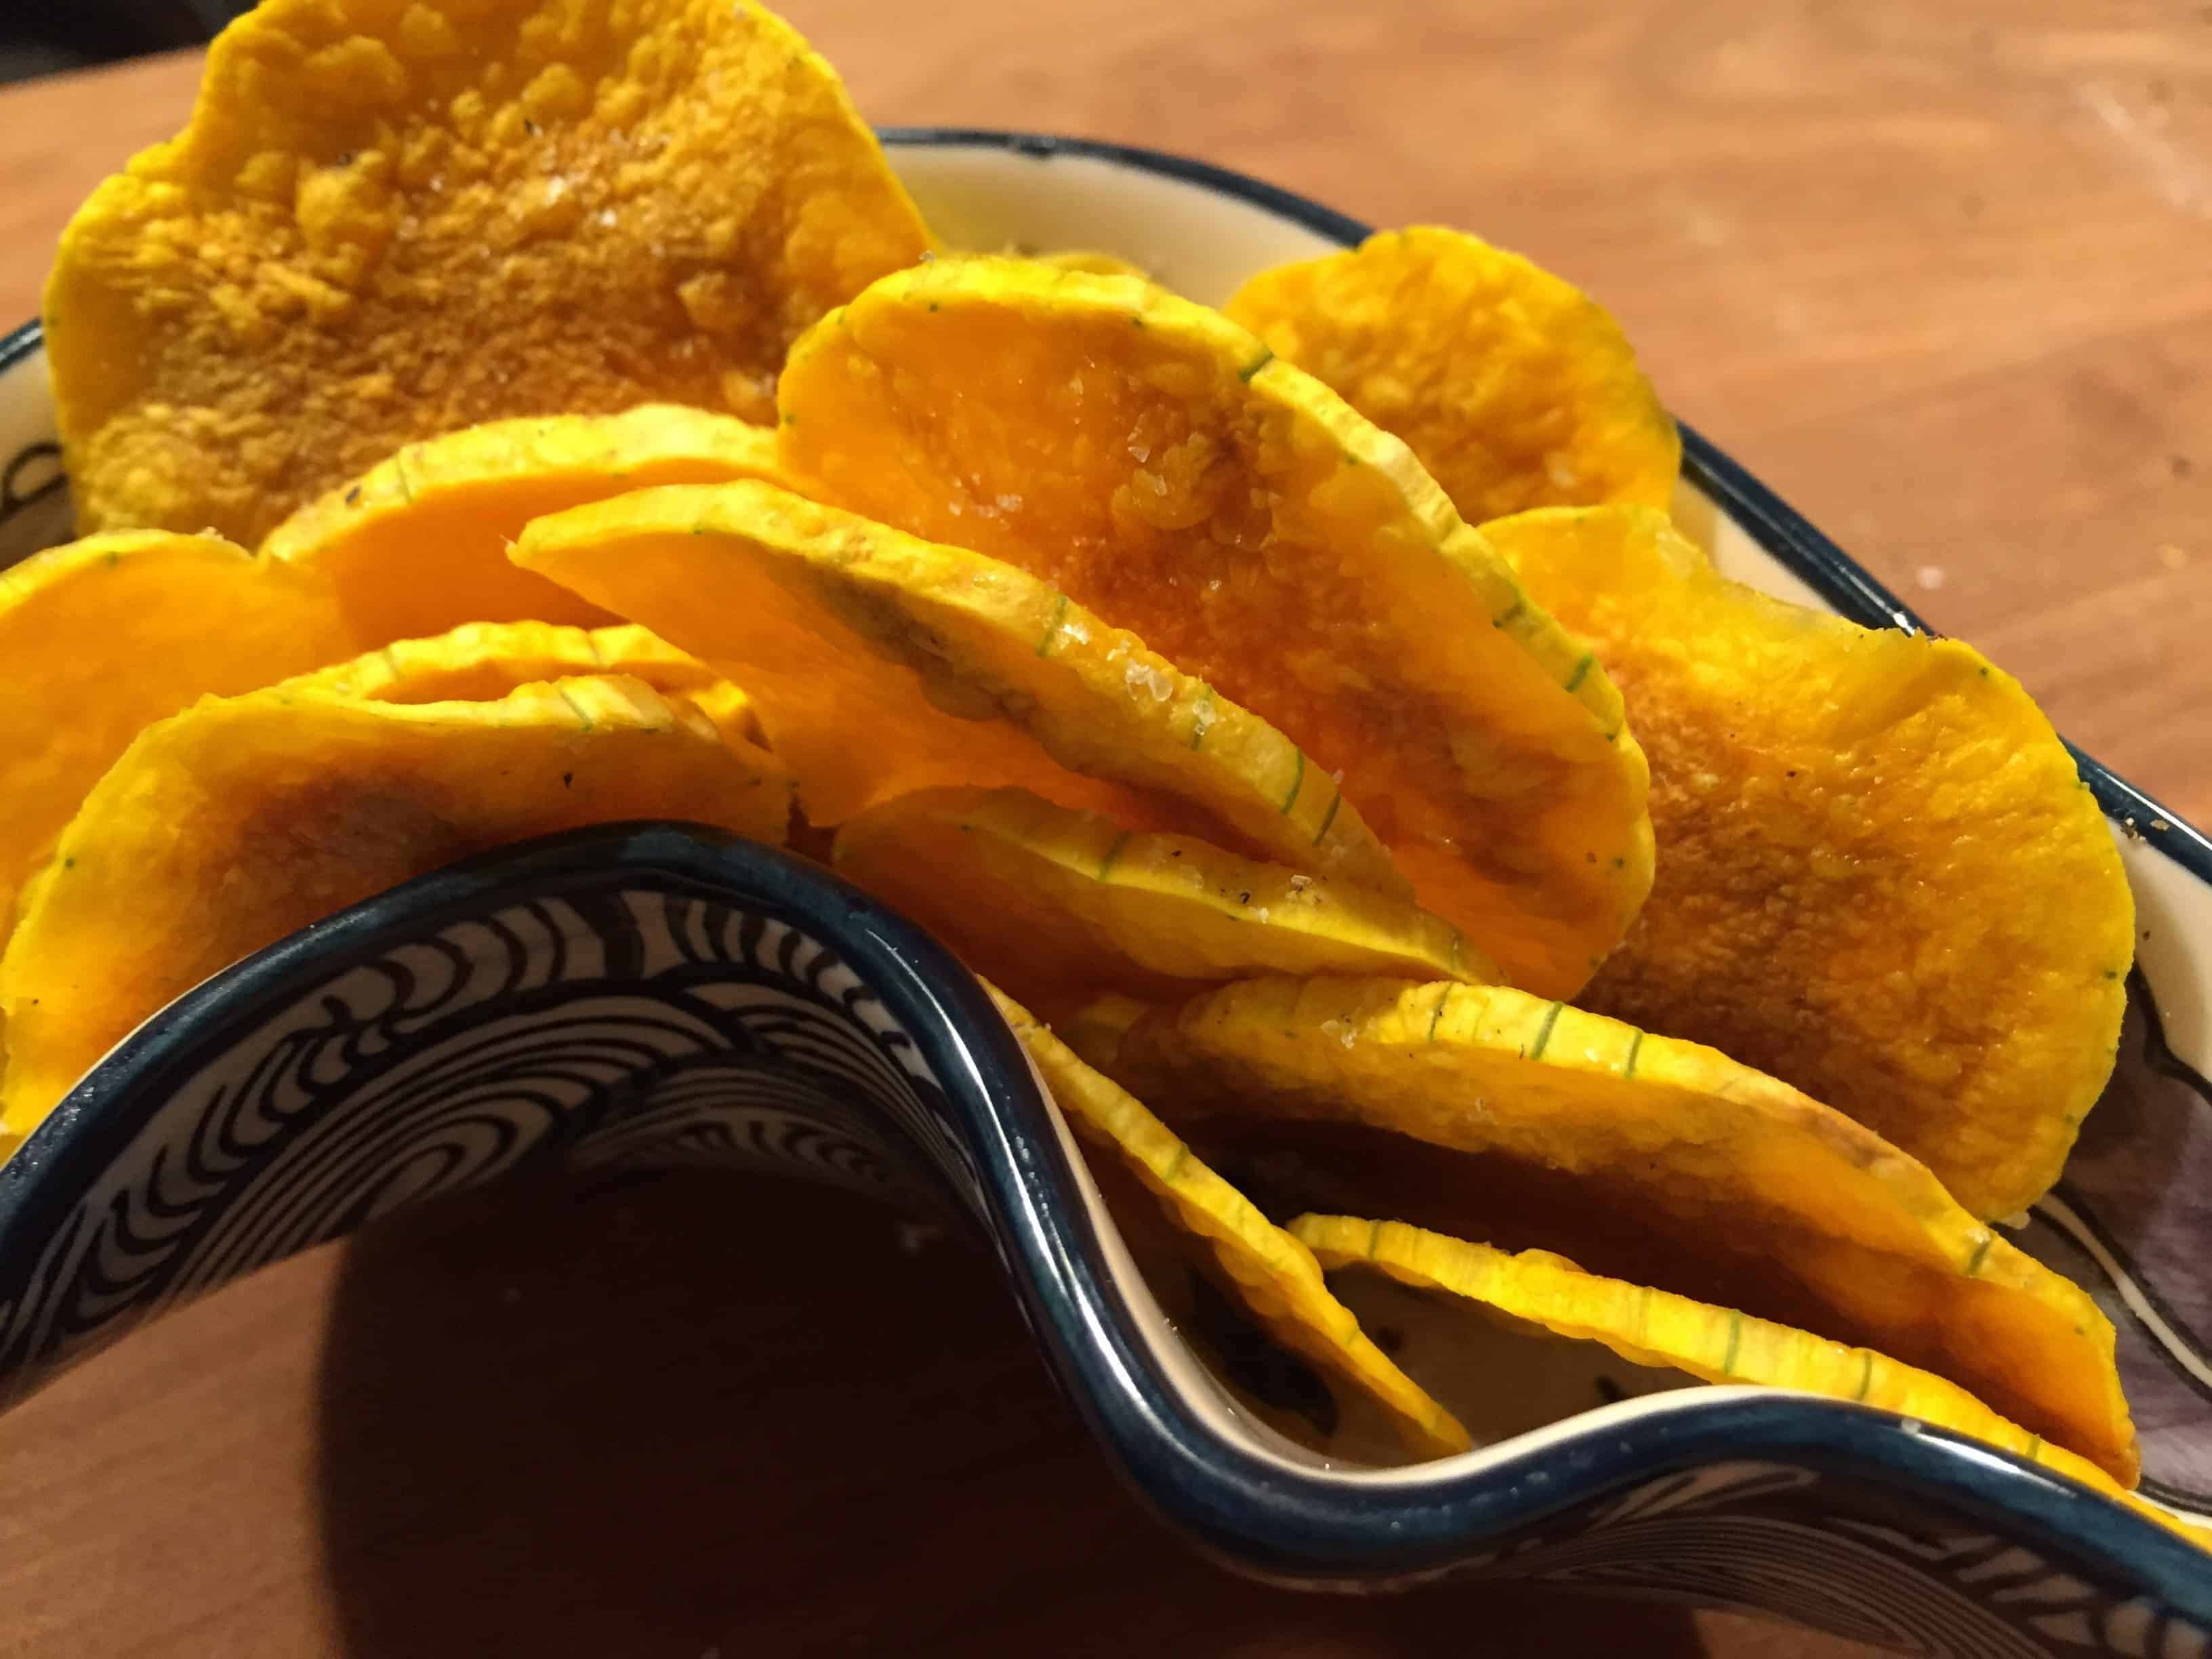 finished_product_crispy_paleo_butternut_squash_chips_good_for_dipping_with_included_panama_hot_sauce_recipe